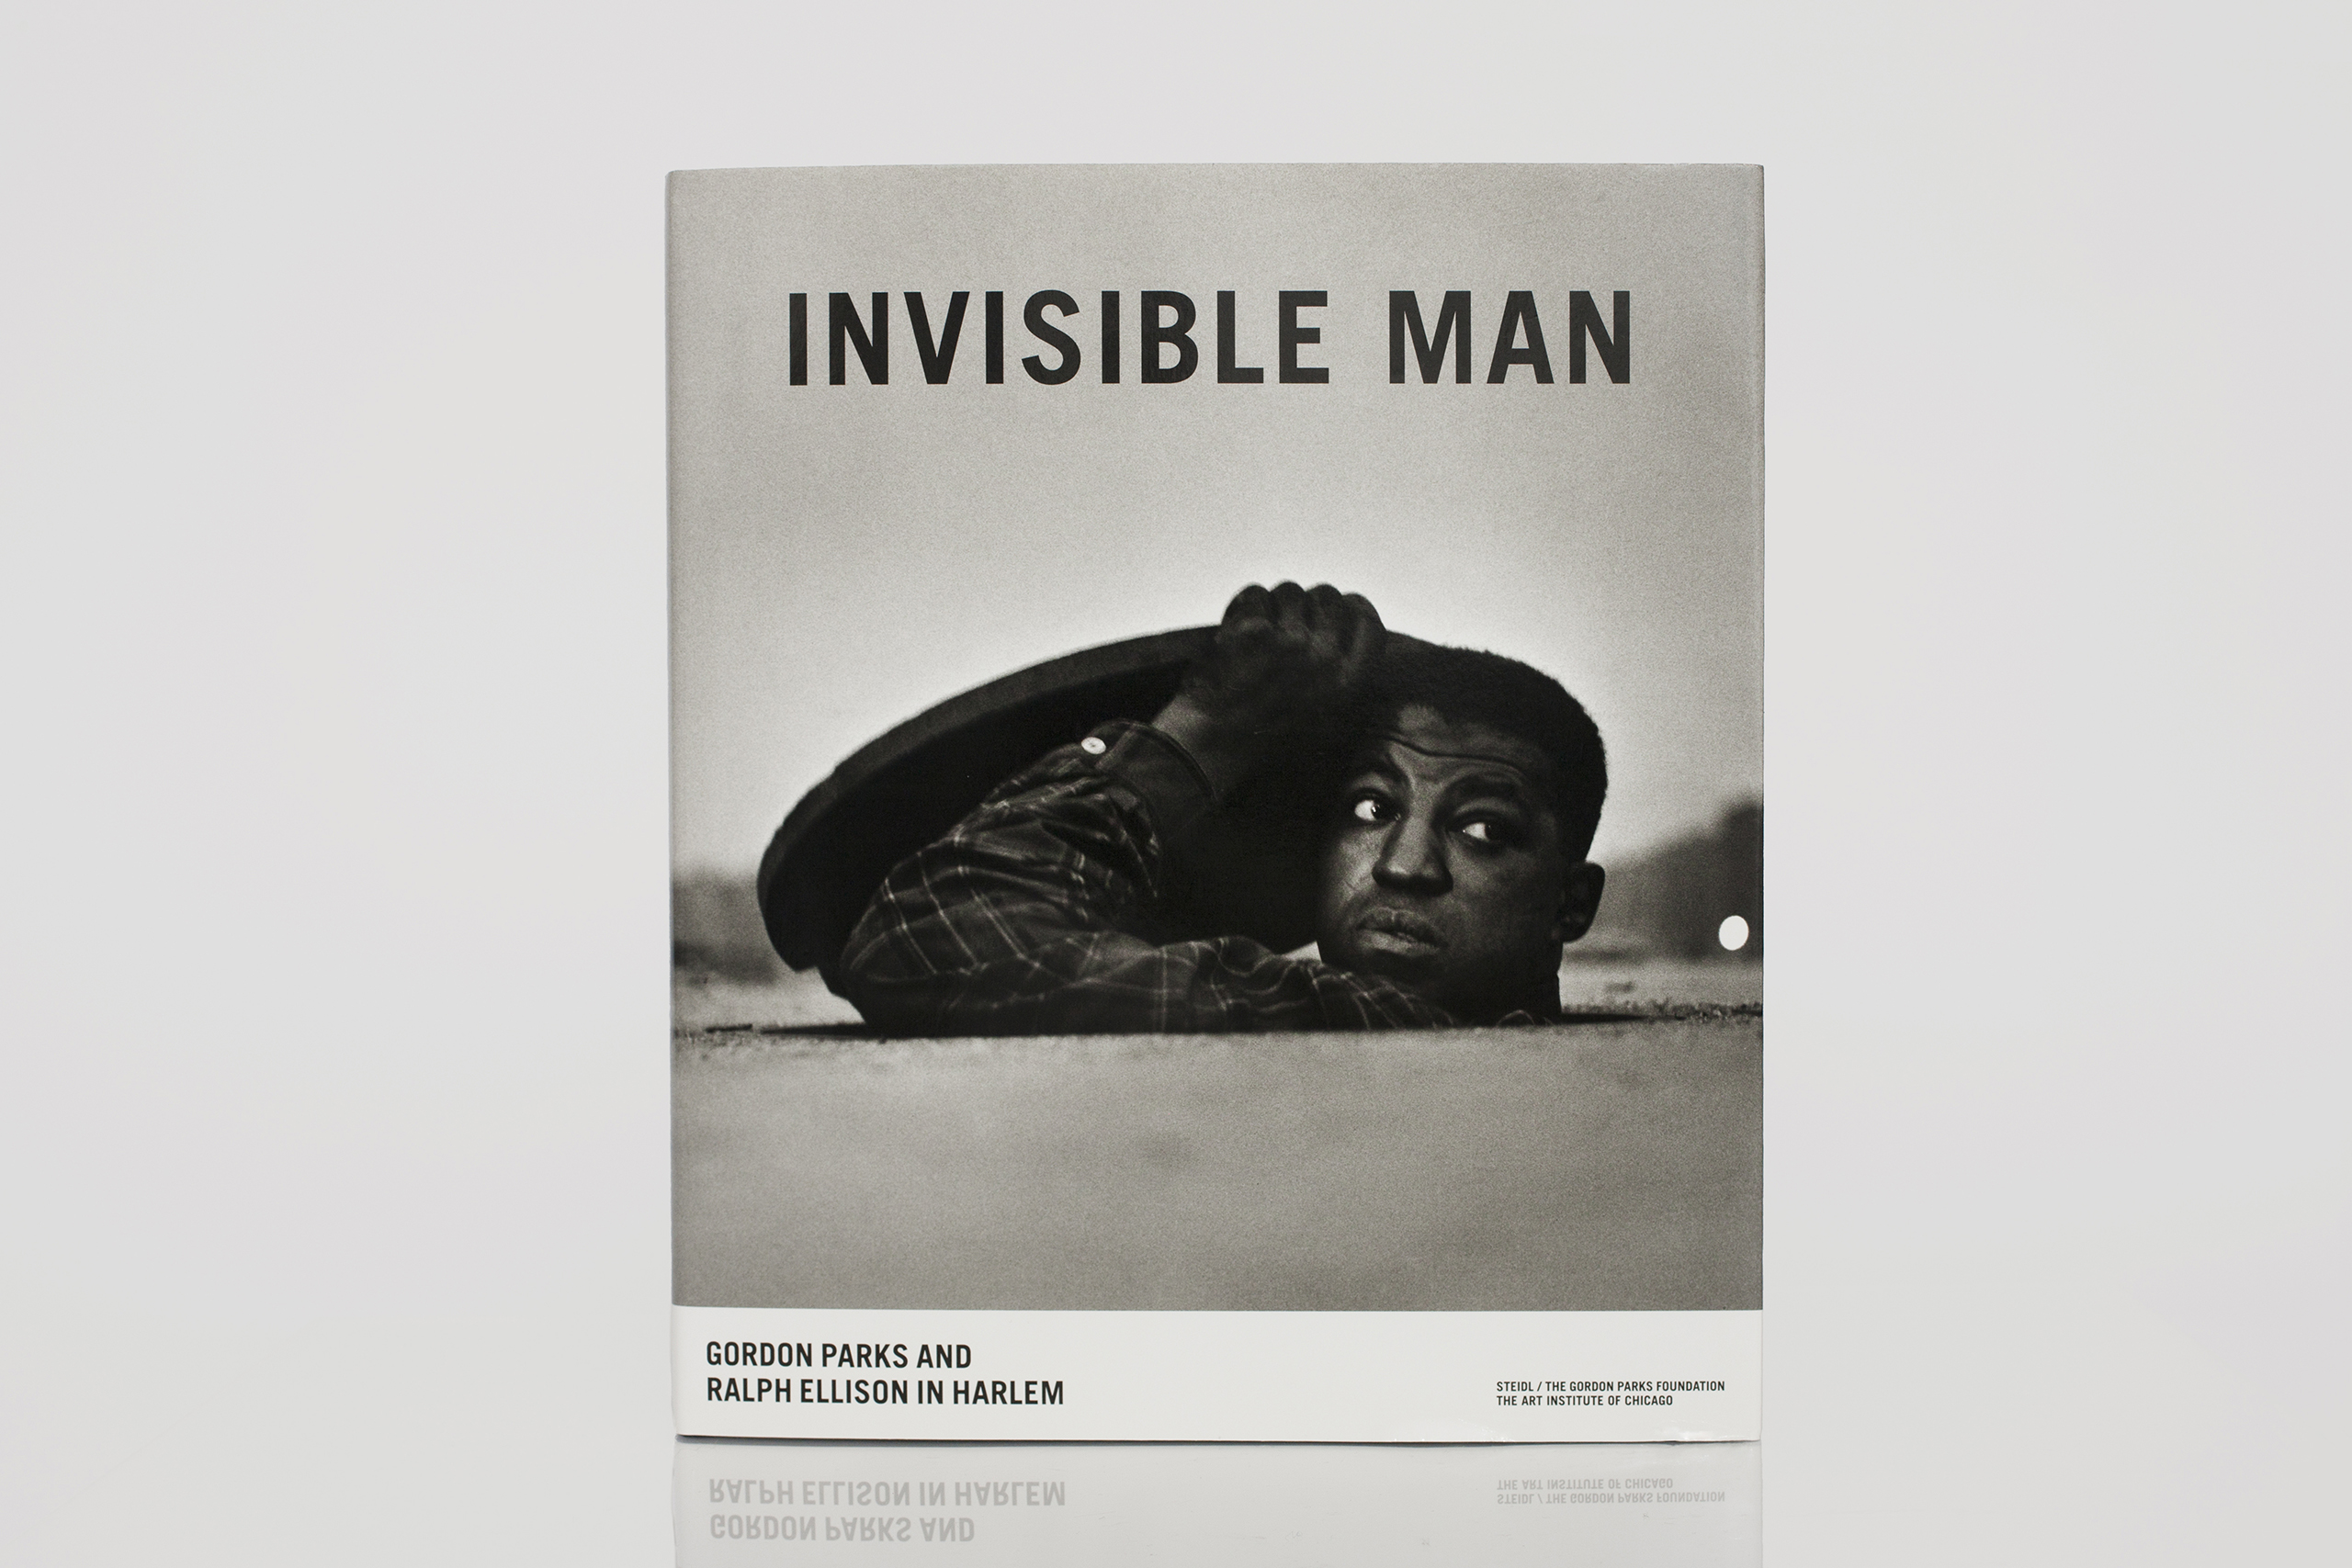 Invisible Man: Gordon Parks and Ralph Ellison in Harlem by Gordon ParksPublished by Steidl/The Gordon Parks Foundation, The Art Institute of Chicago